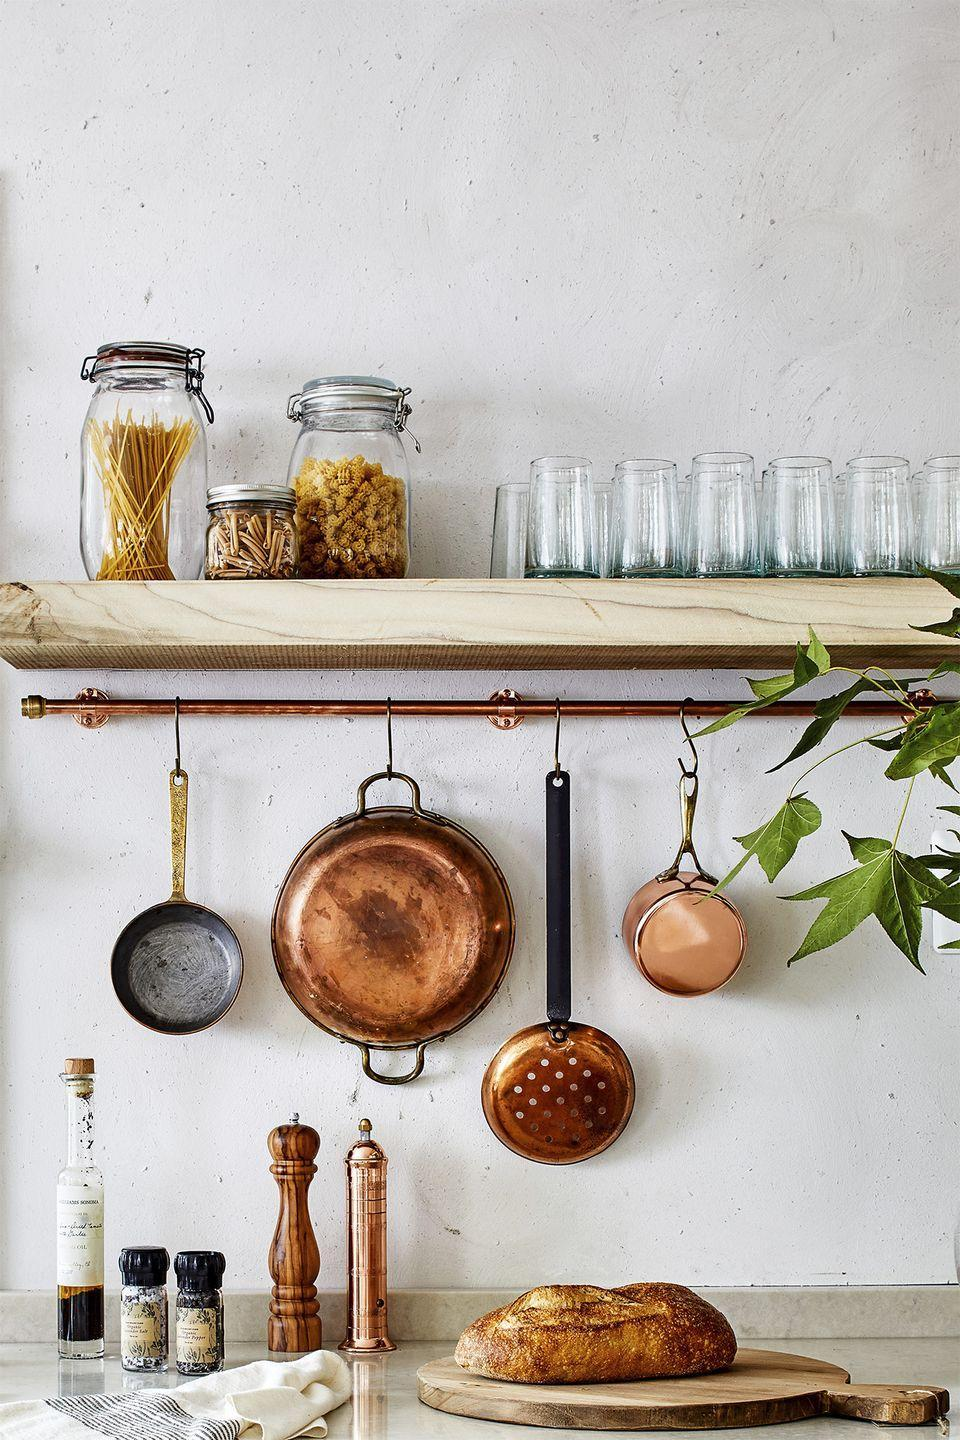 """<p>A piece of copper pipe from your local hardware store can create space for hanging pots, measuring cups and other kitchen essentials.</p><p><strong>RELATED: </strong><a href=""""https://www.goodhousekeeping.com/home/organizing/tips/g1397/small-kitchen-storage/"""" rel=""""nofollow noopener"""" target=""""_blank"""" data-ylk=""""slk:Storage Tricks for Small Kitchens"""" class=""""link rapid-noclick-resp"""">Storage Tricks for Small Kitchens</a></p>"""